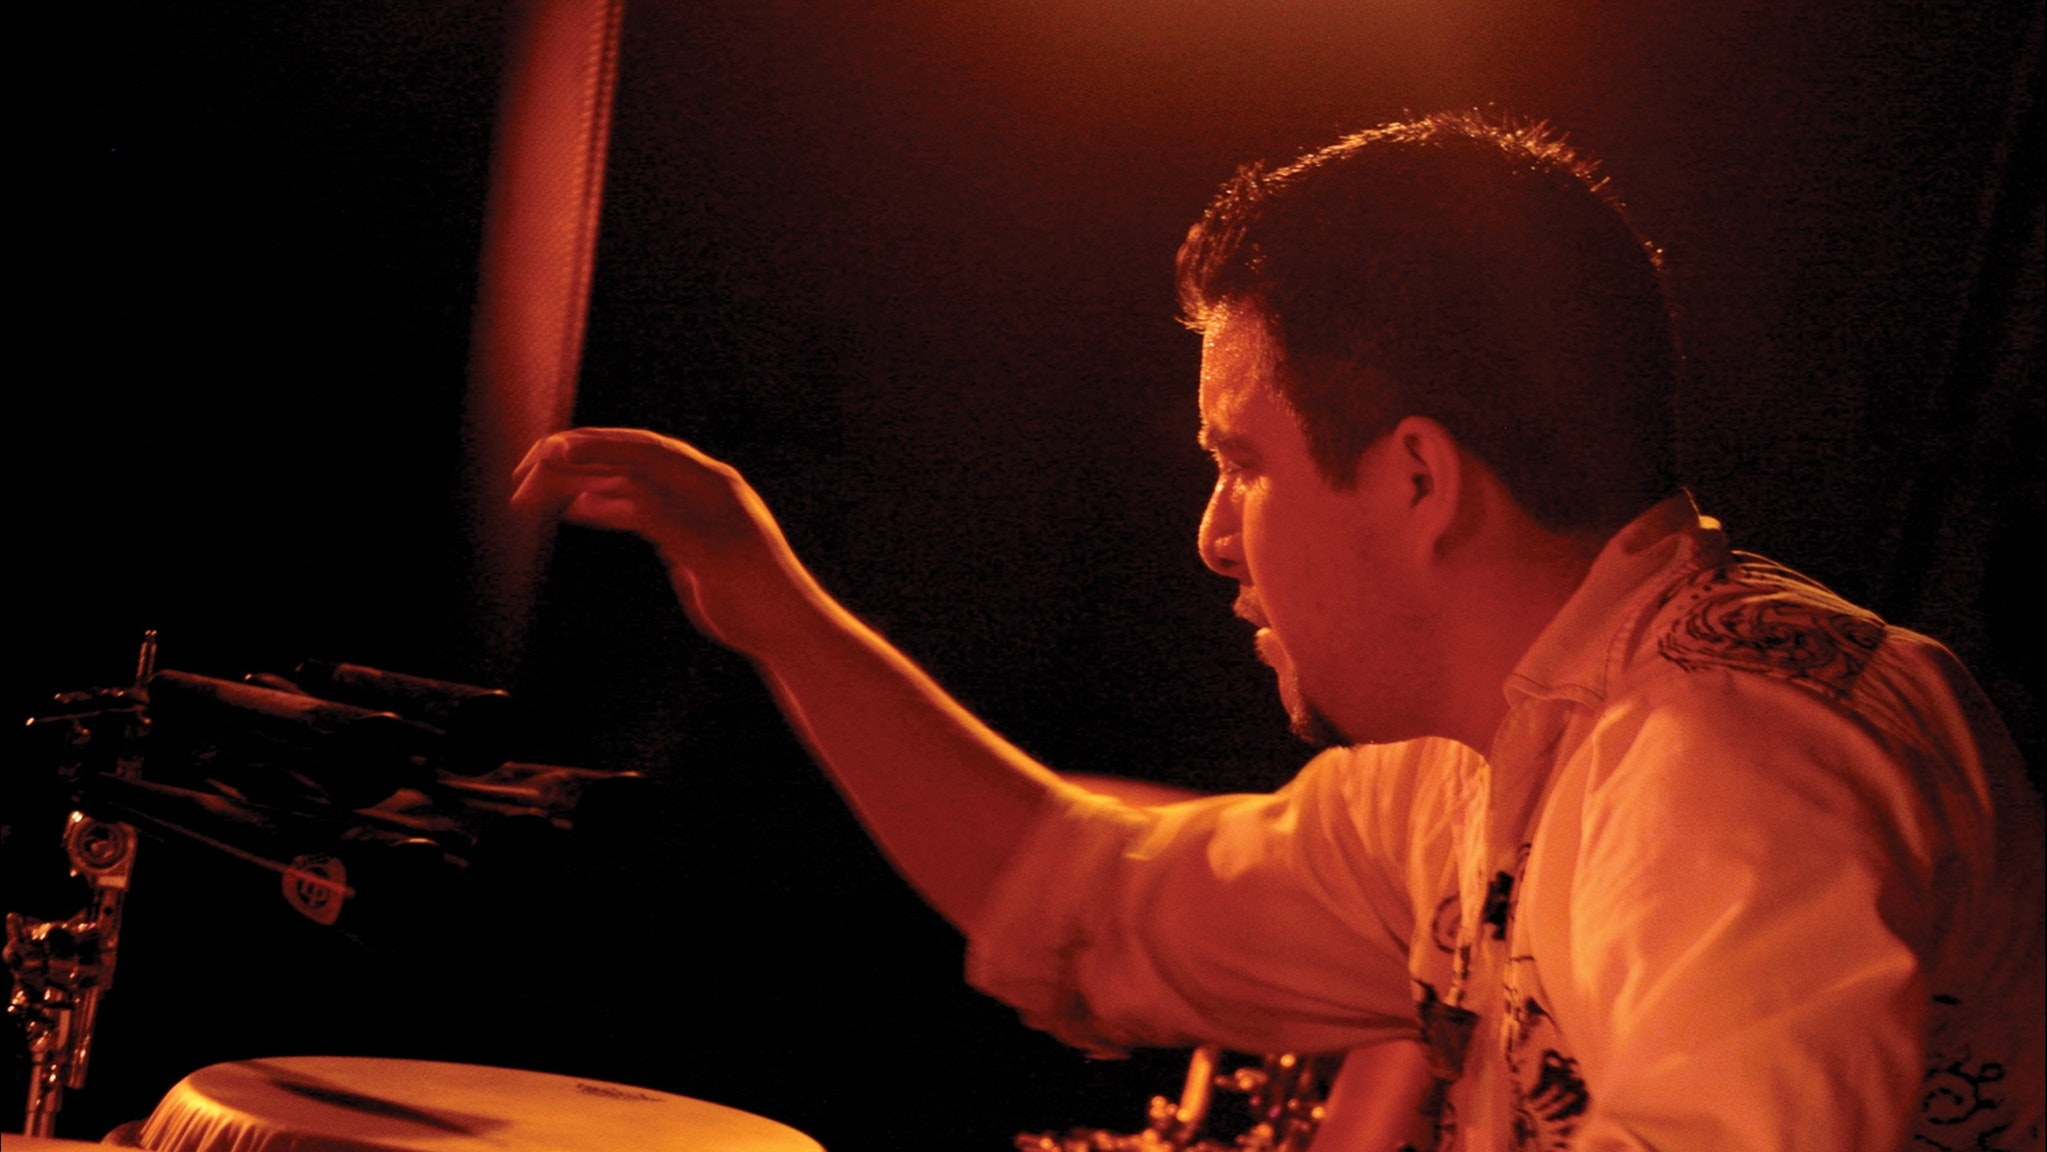 Samuel Torres is a Colombian percussionist, composer and arranger.